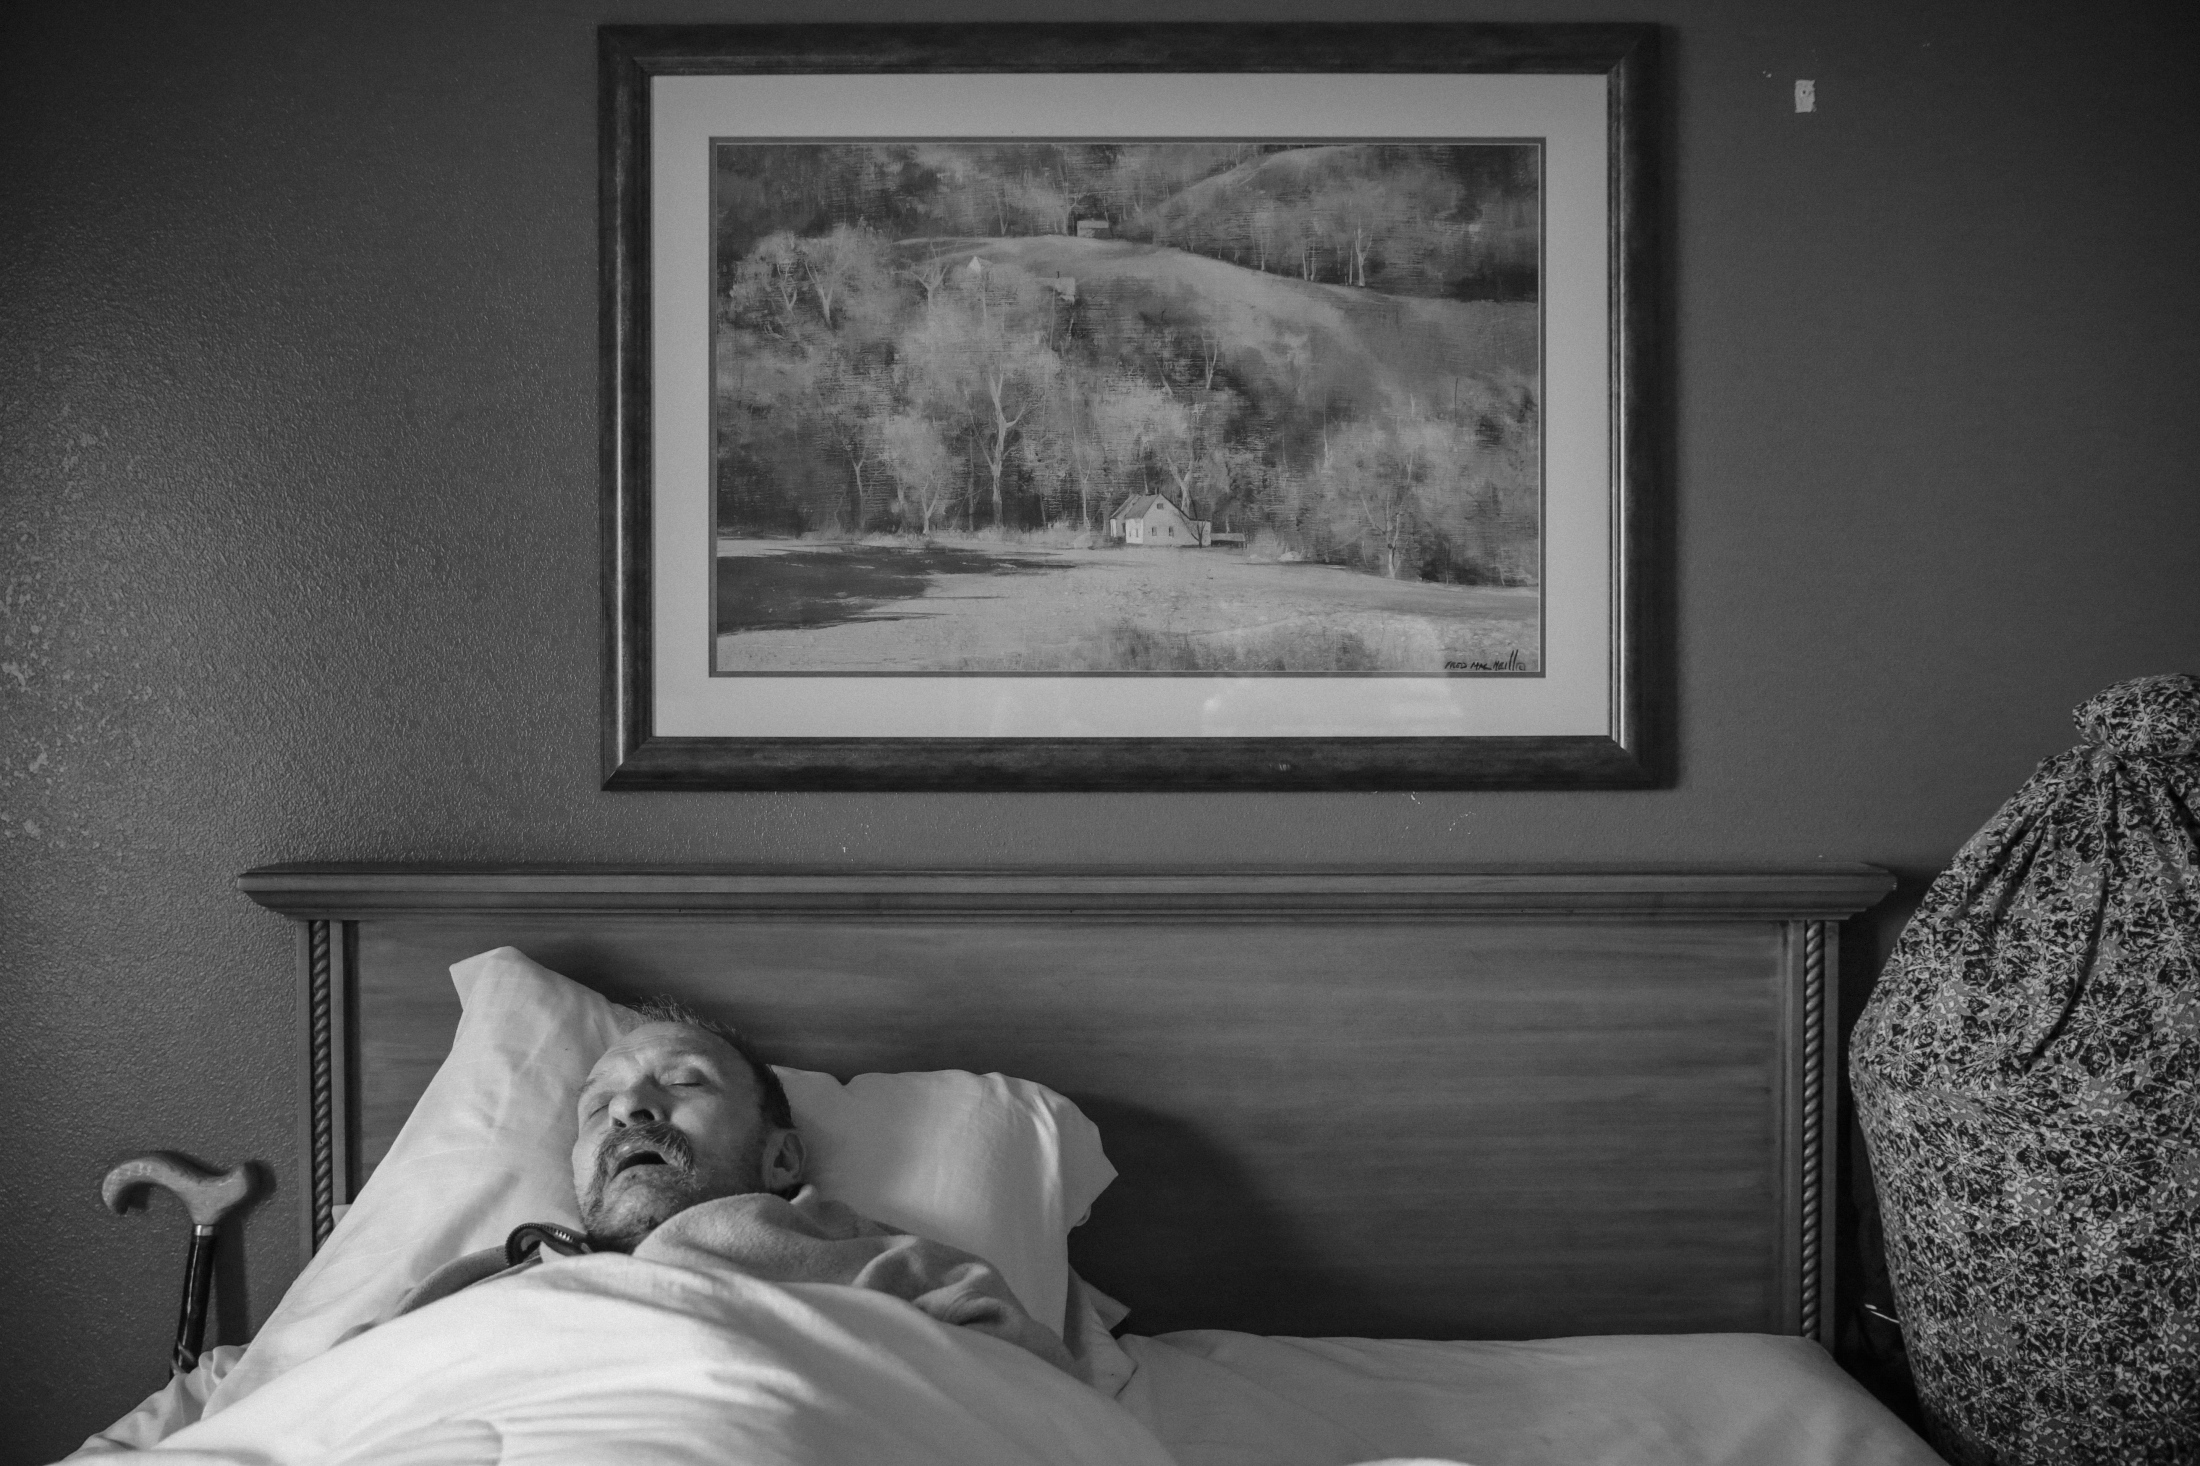 Ty takes a nap in a motel room. Ty started suffering from dementia about a year ago, and now he barely recognizes his daughter Dawn and her fiancé Anthony.